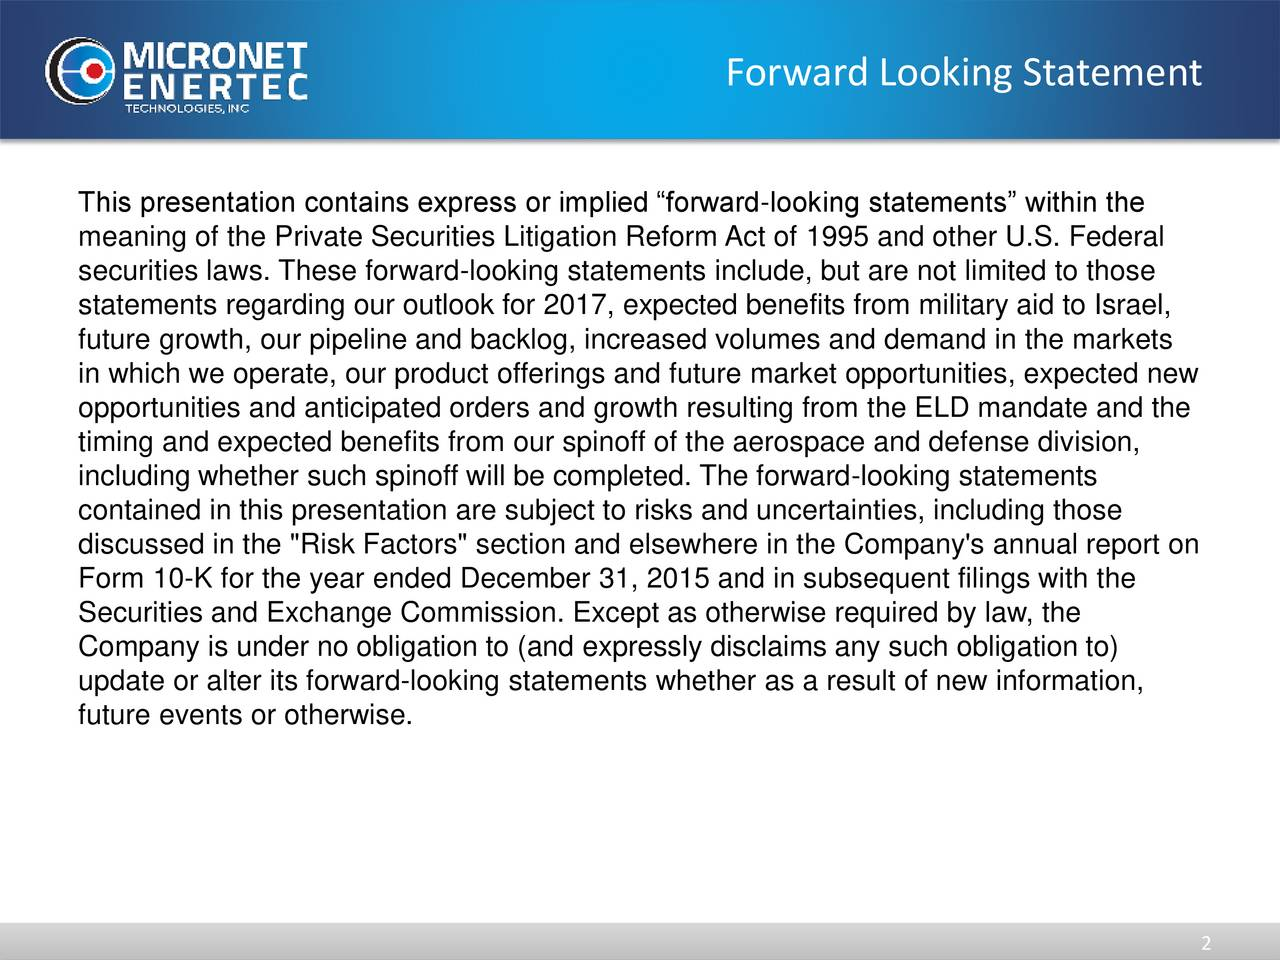 """This presentation contains express or implied forward-looking statements within the meaning of the Private Securities Litigation Reform Act of 1995 and other U.S. Federal securities laws. These forward-looking statements include, but are not limited to those statements regarding our outlook for 2017, expected benefits from military aid to Israel, future growth, our pipeline and backlog, increased volumes and demand in the markets in which we operate, our product offerings and future market opportunities, expected new opportunities and anticipated orders and growth resulting from the ELD mandate and the timing and expected benefits from our spinoff of the aerospace and defense division, including whether such spinoff will be completed. The forward-looking statements contained in this presentation are subject to risks and uncertainties, including those discussed in the """"Risk Factors"""" section and elsewhere in the Company's annual report on Form 10-K for the year ended December 31, 2015 and in subsequent filings with the Securities and Exchange Commission. Except as otherwise required by law, the Company is under no obligation to (and expressly disclaims any such obligation to) update or alter its forward-looking statements whether as a result of new information, future events or otherwise."""